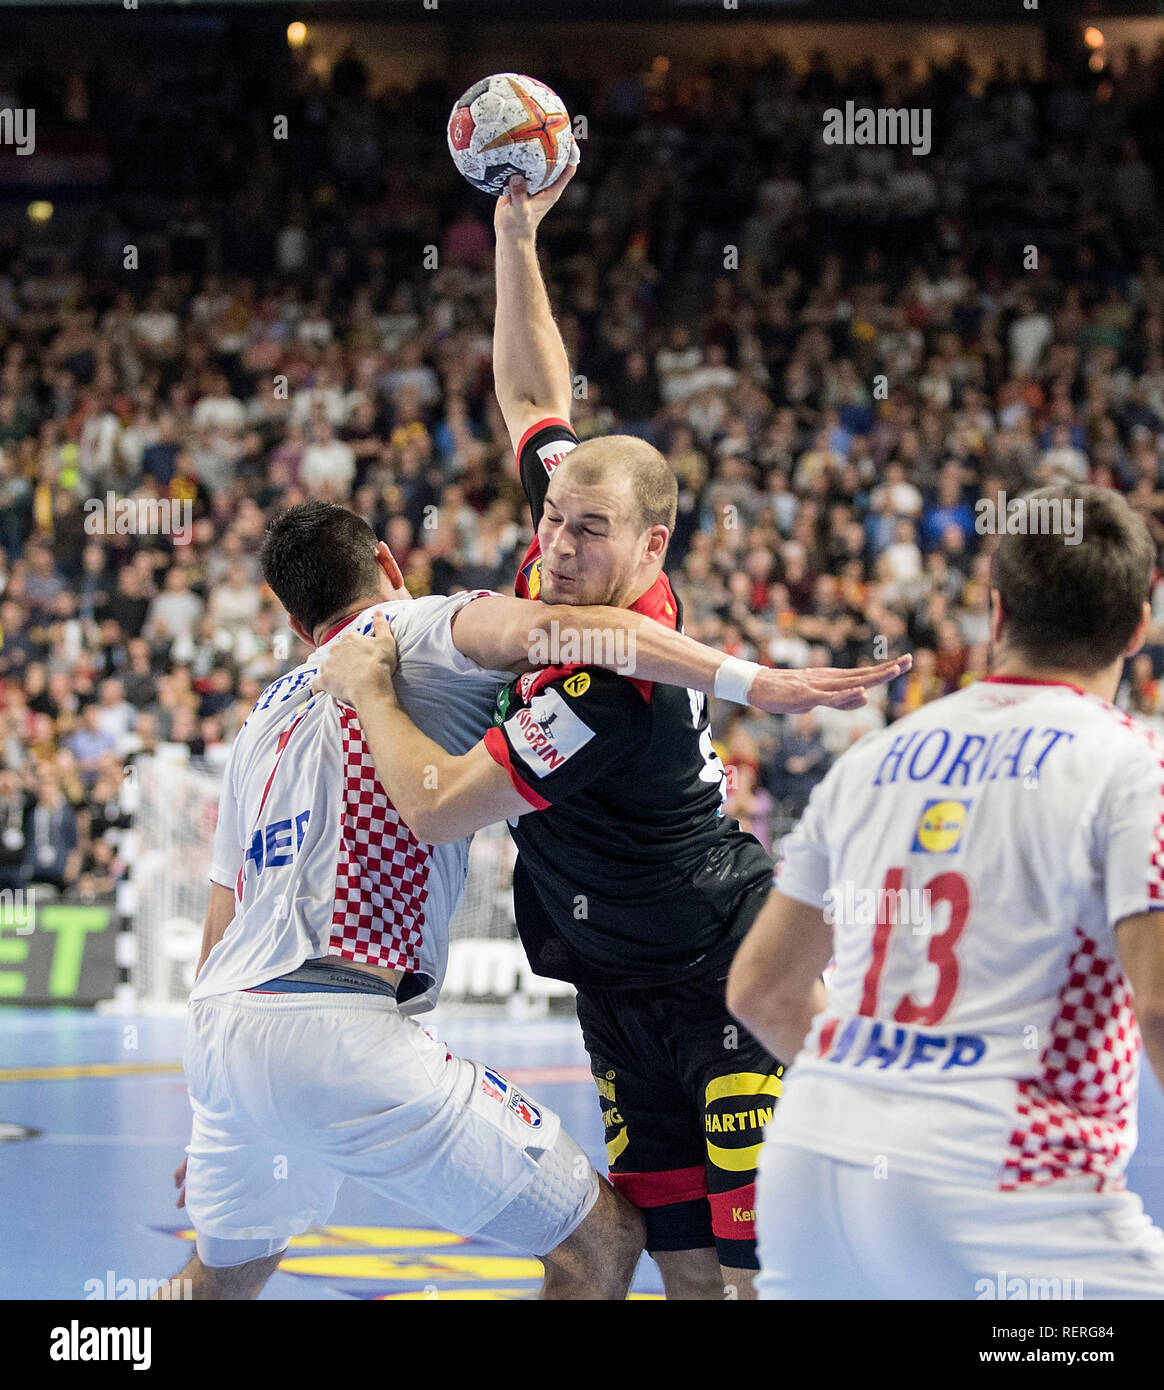 Paul DRUX (GER) in a duel versus Luka STEPANCIC l. (CRO) and Zlatko HORVAT r. (CRO), Main Round Group I, Croatia (CRO) - Germany (GER), on 21.01.2019 in Koeln / Germany. Handball World Cup 2019, from 10.01. - 27.01.2019 in Germany / Denmark. | usage worldwide Stock Photo